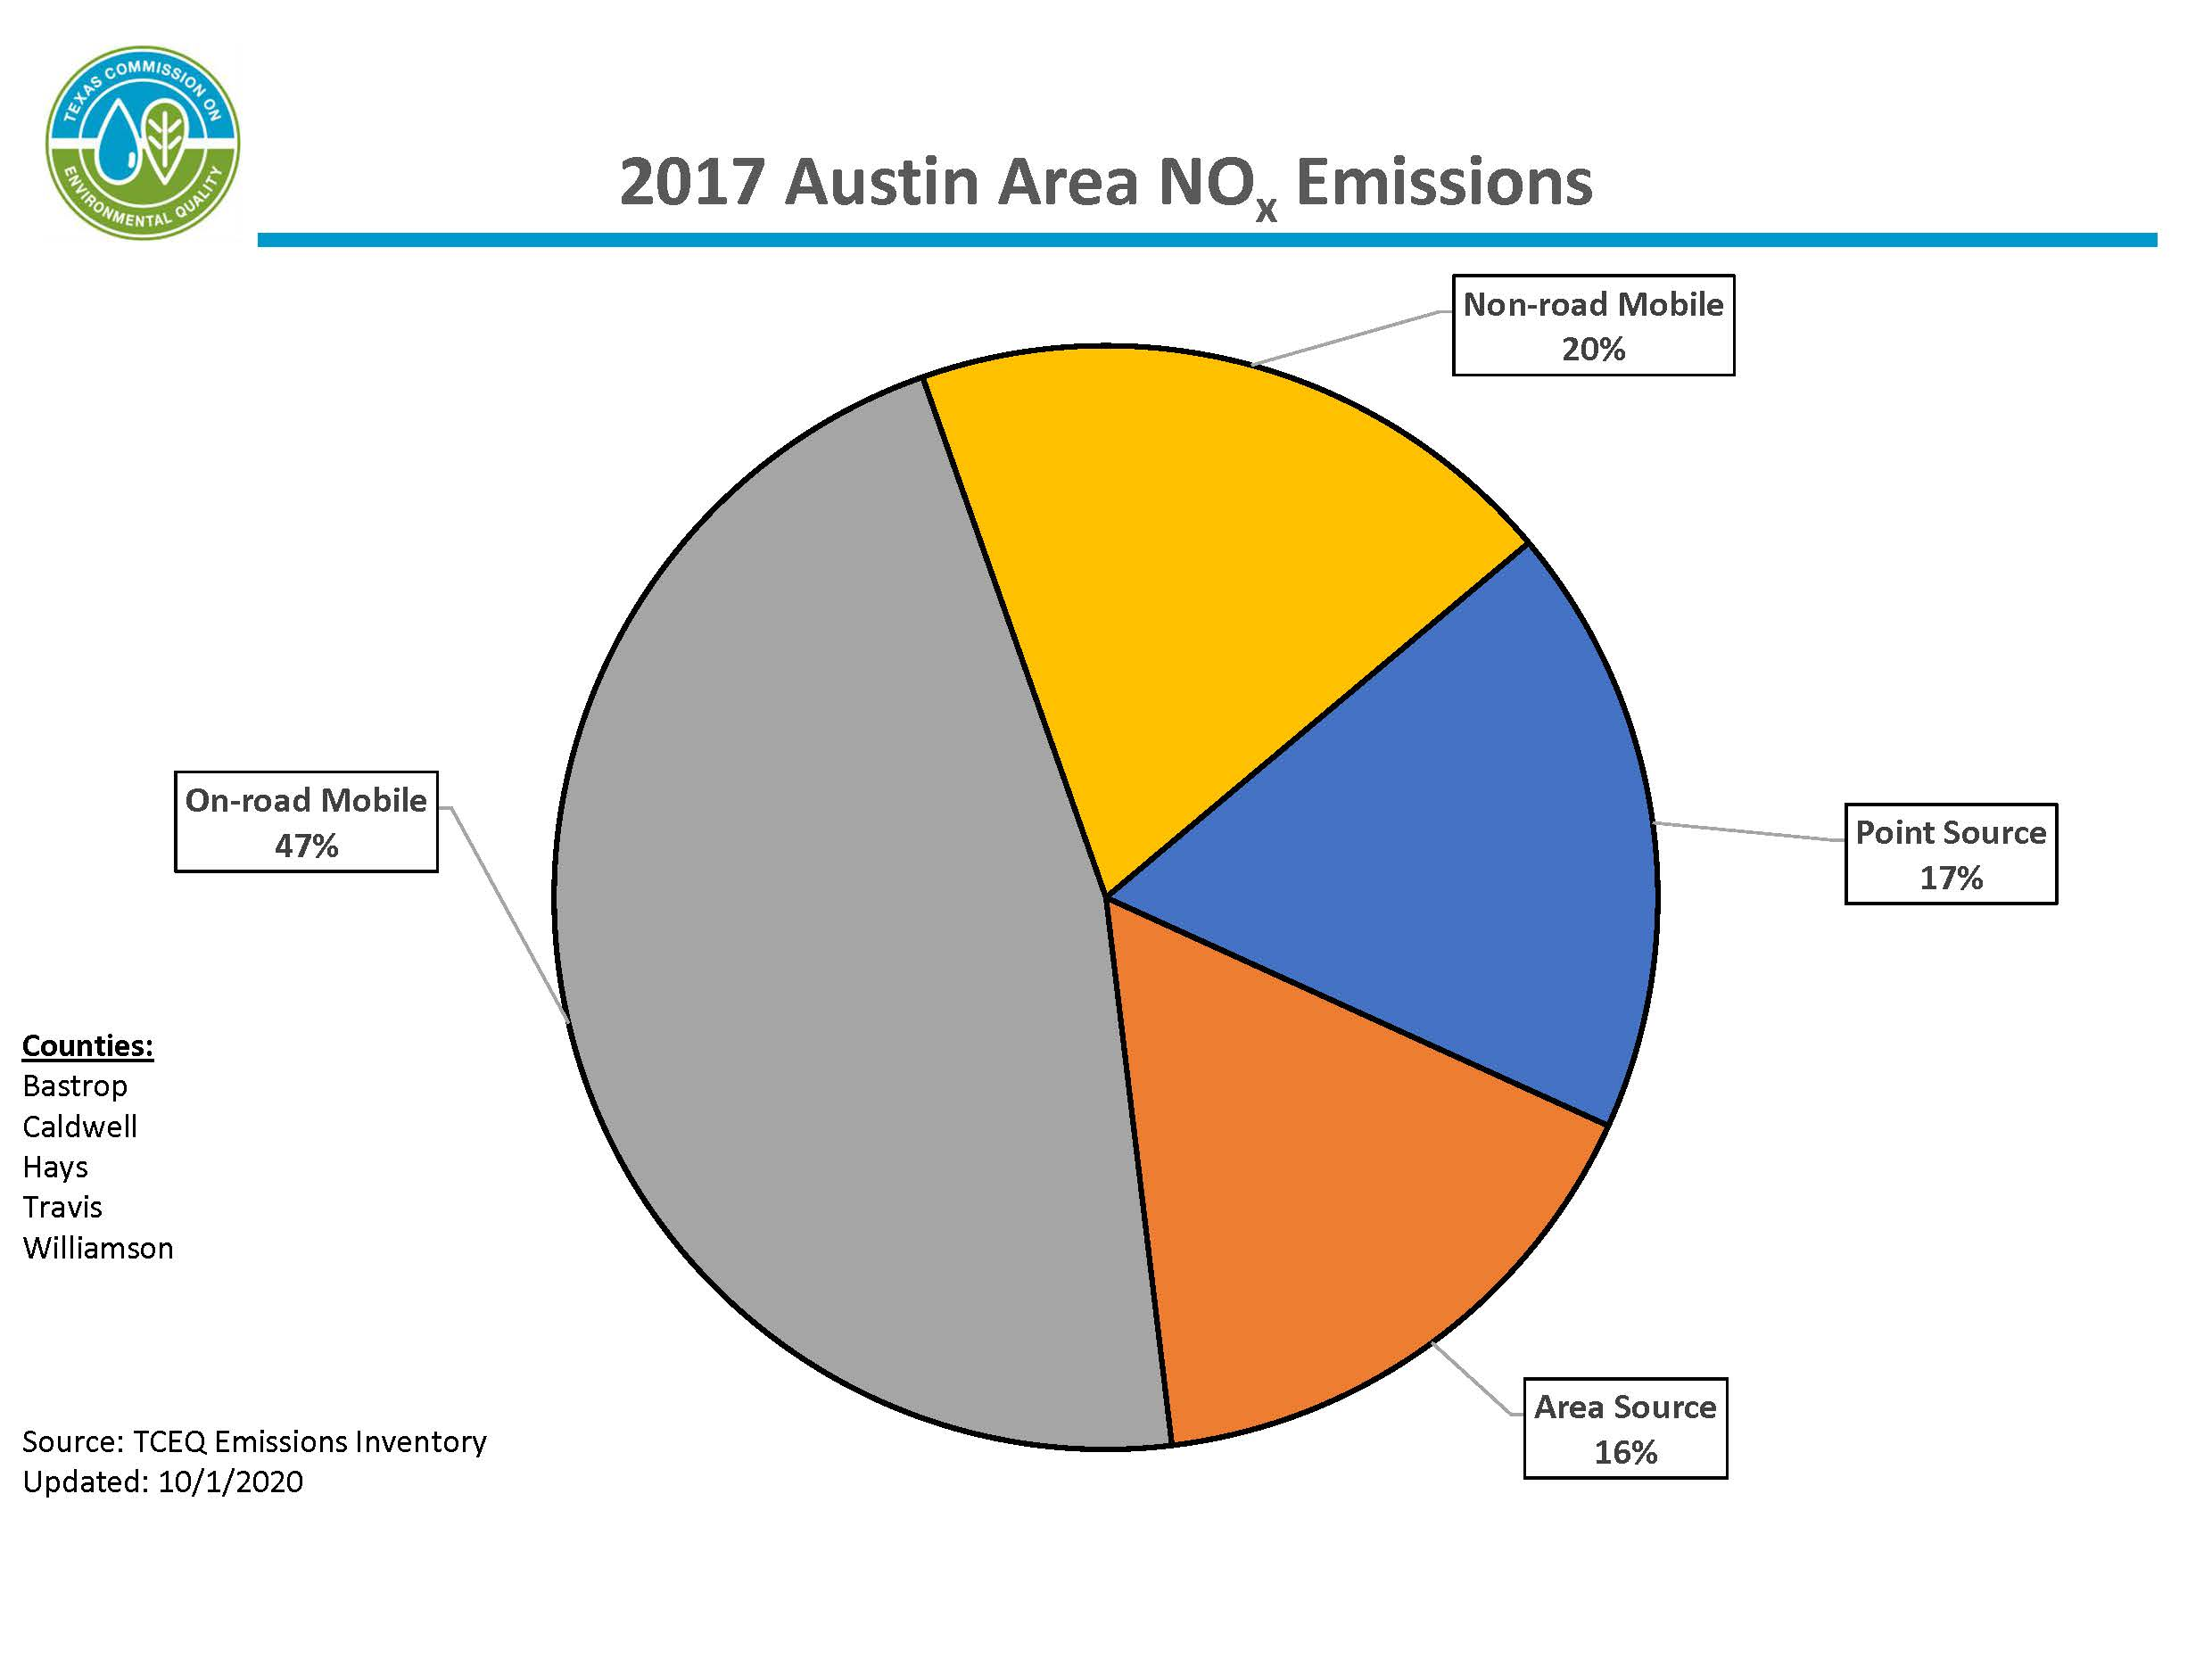 This chart represents calendar year 2017 nitrogen oxide emissions for the Austin area. The Austin area includes Bastrop, Caldwell, Hays, Travis, and Williamson counties. 67 percent of emissions are from mobile sources, 17 percent of  emissions are from point sources, and 16 percent of emissions are from area sources.